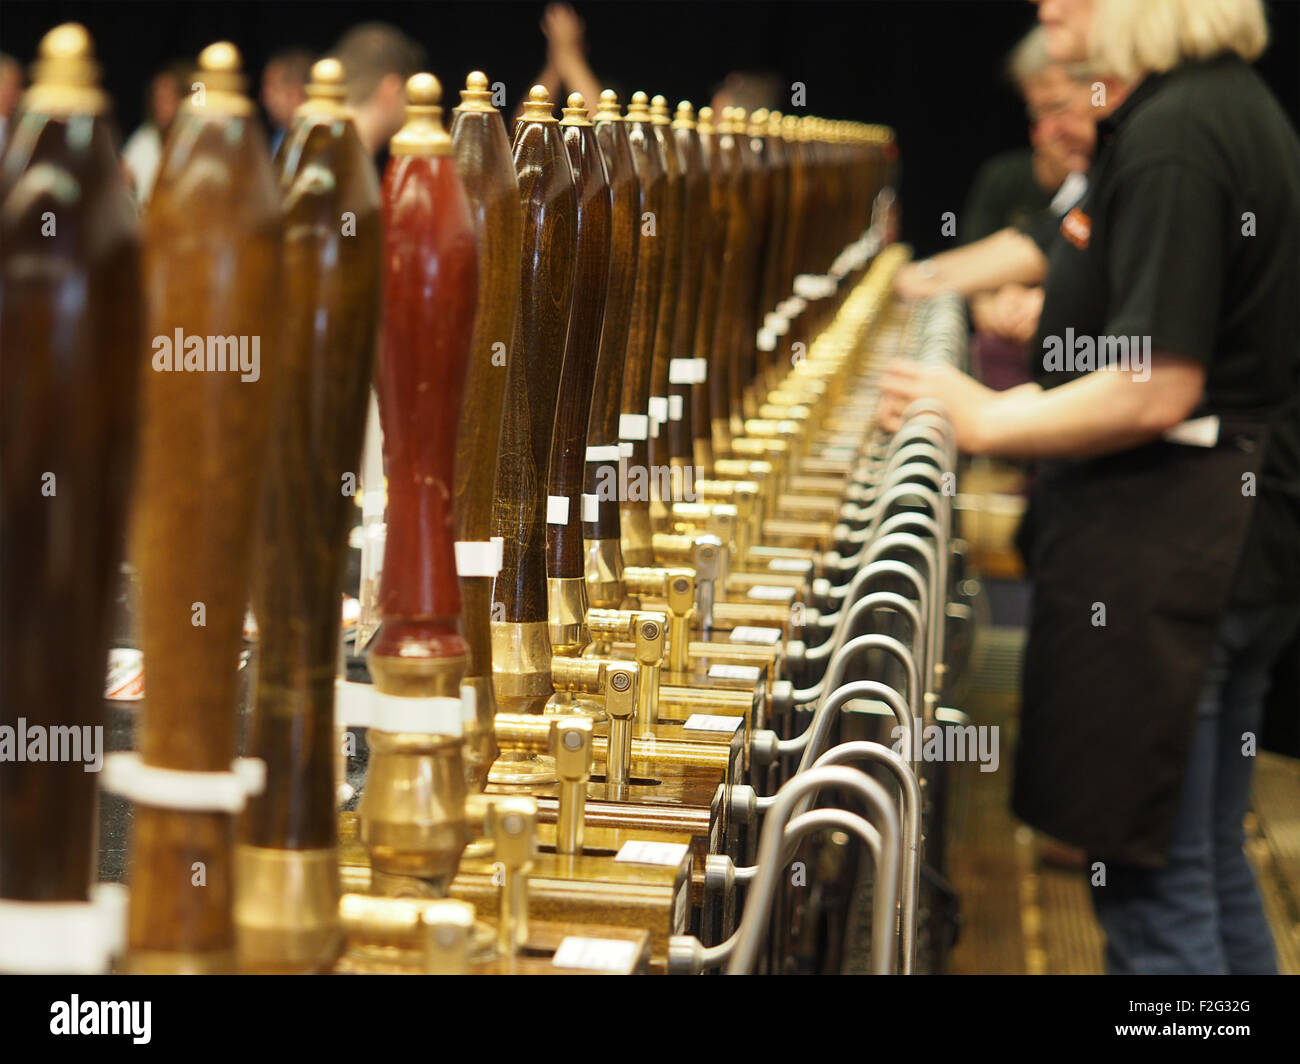 Behind the bar at a beer festival Stock Photo